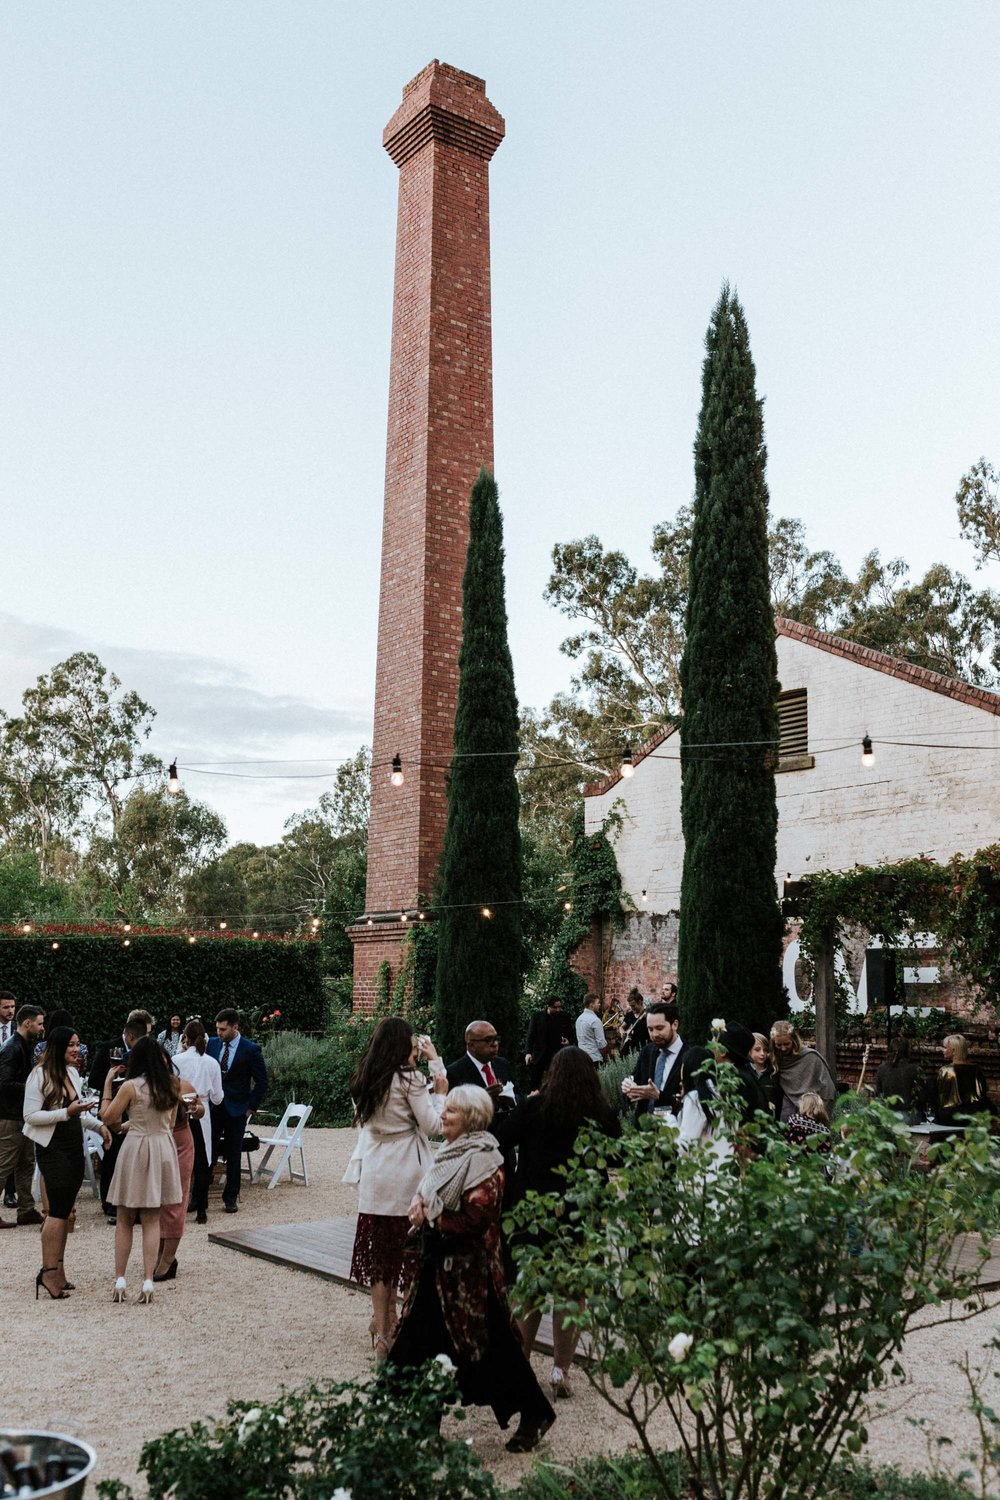 The Euroa Butter Factory, country Victoria wedding venue